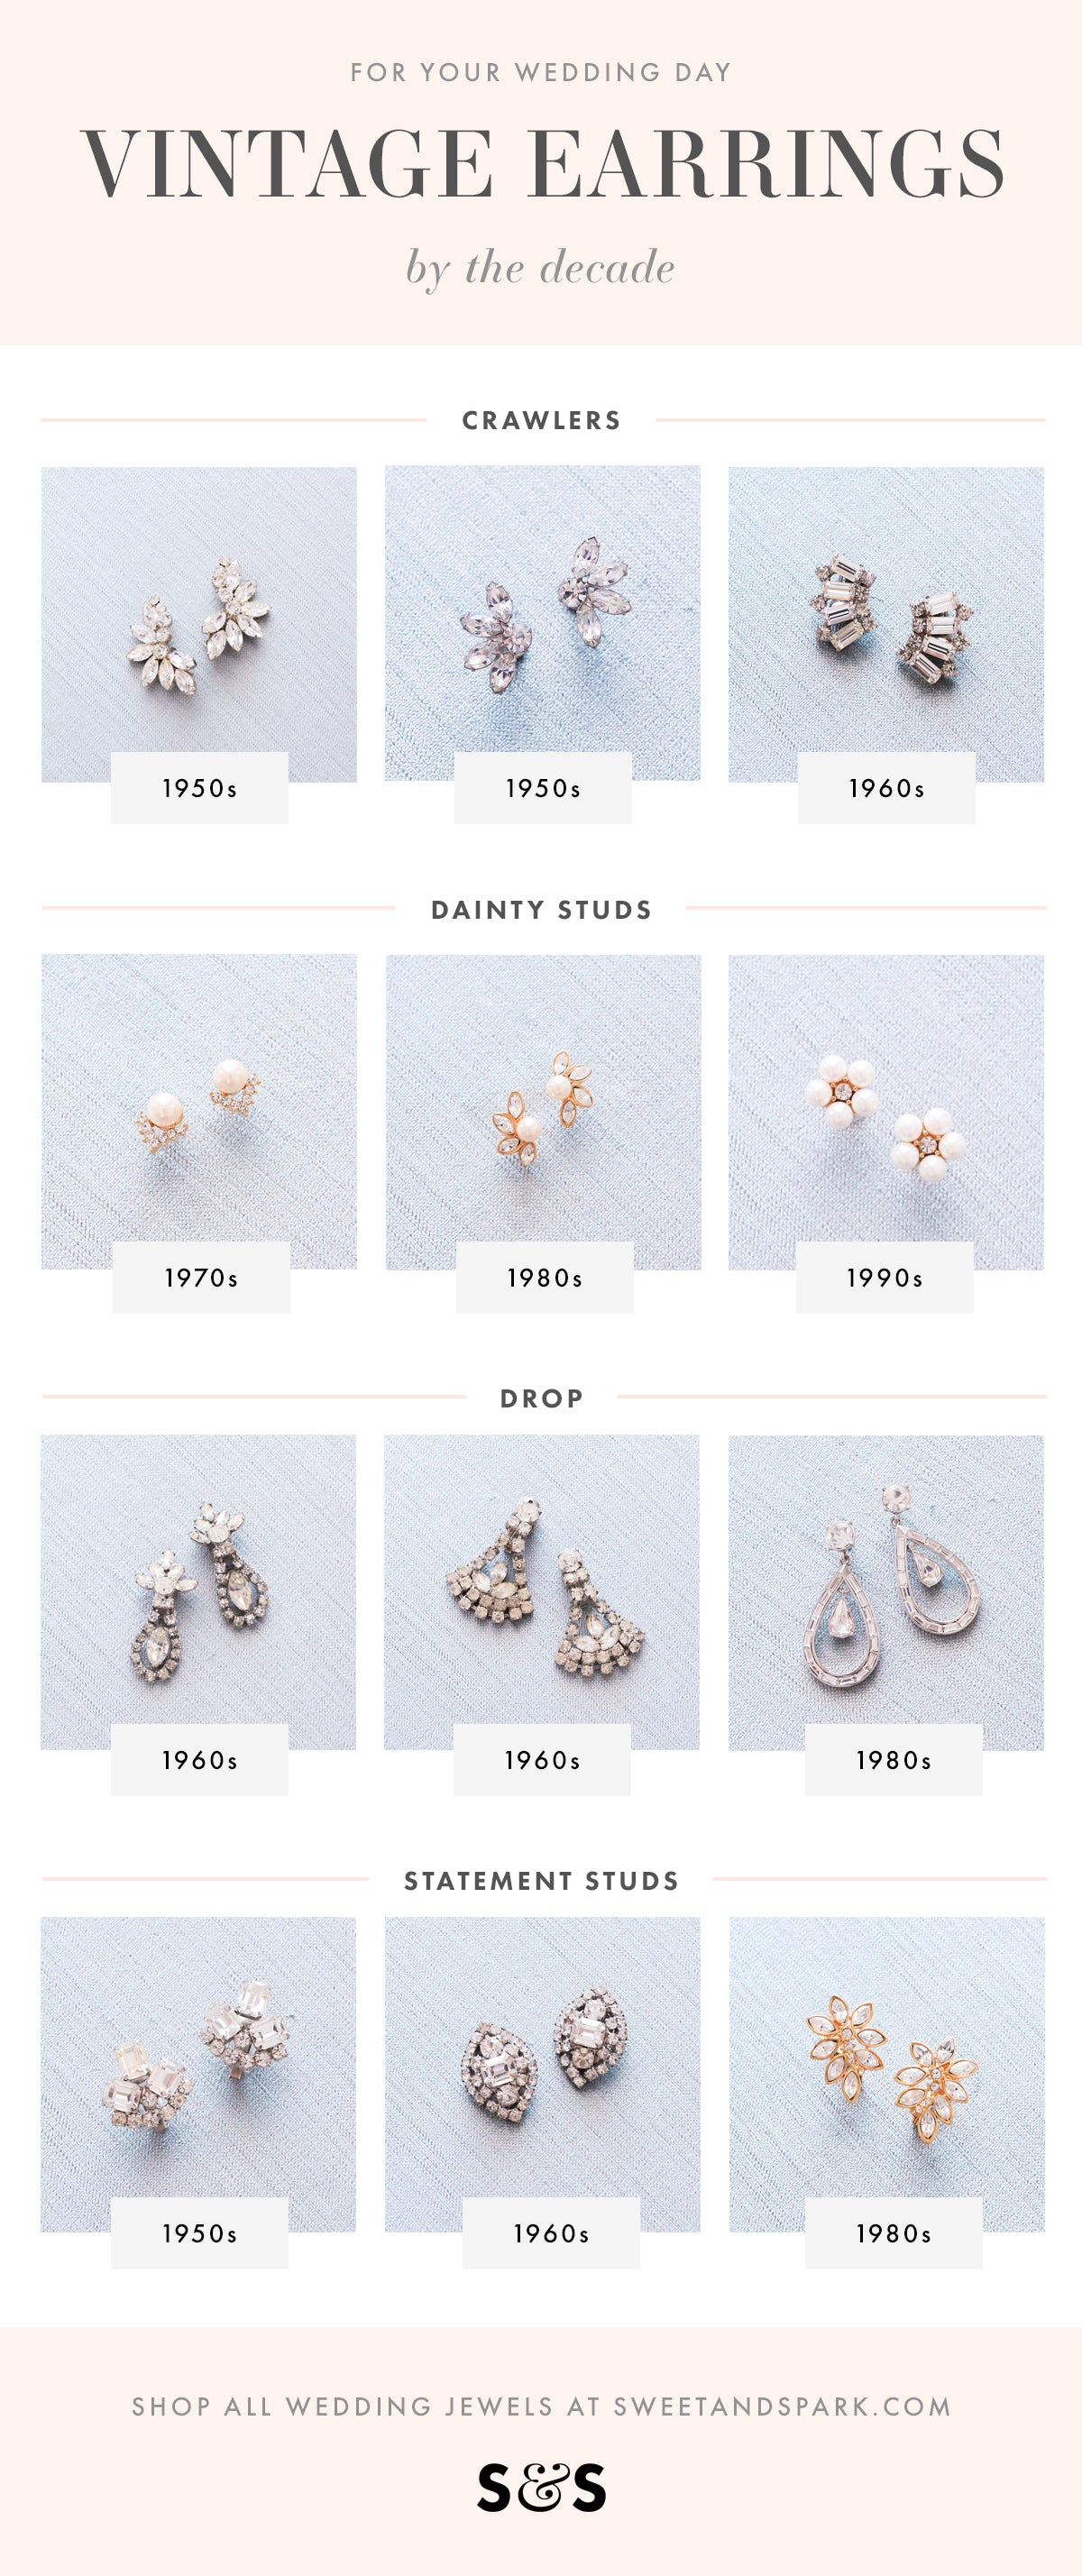 Vintage bridal earrings for your wedding day!